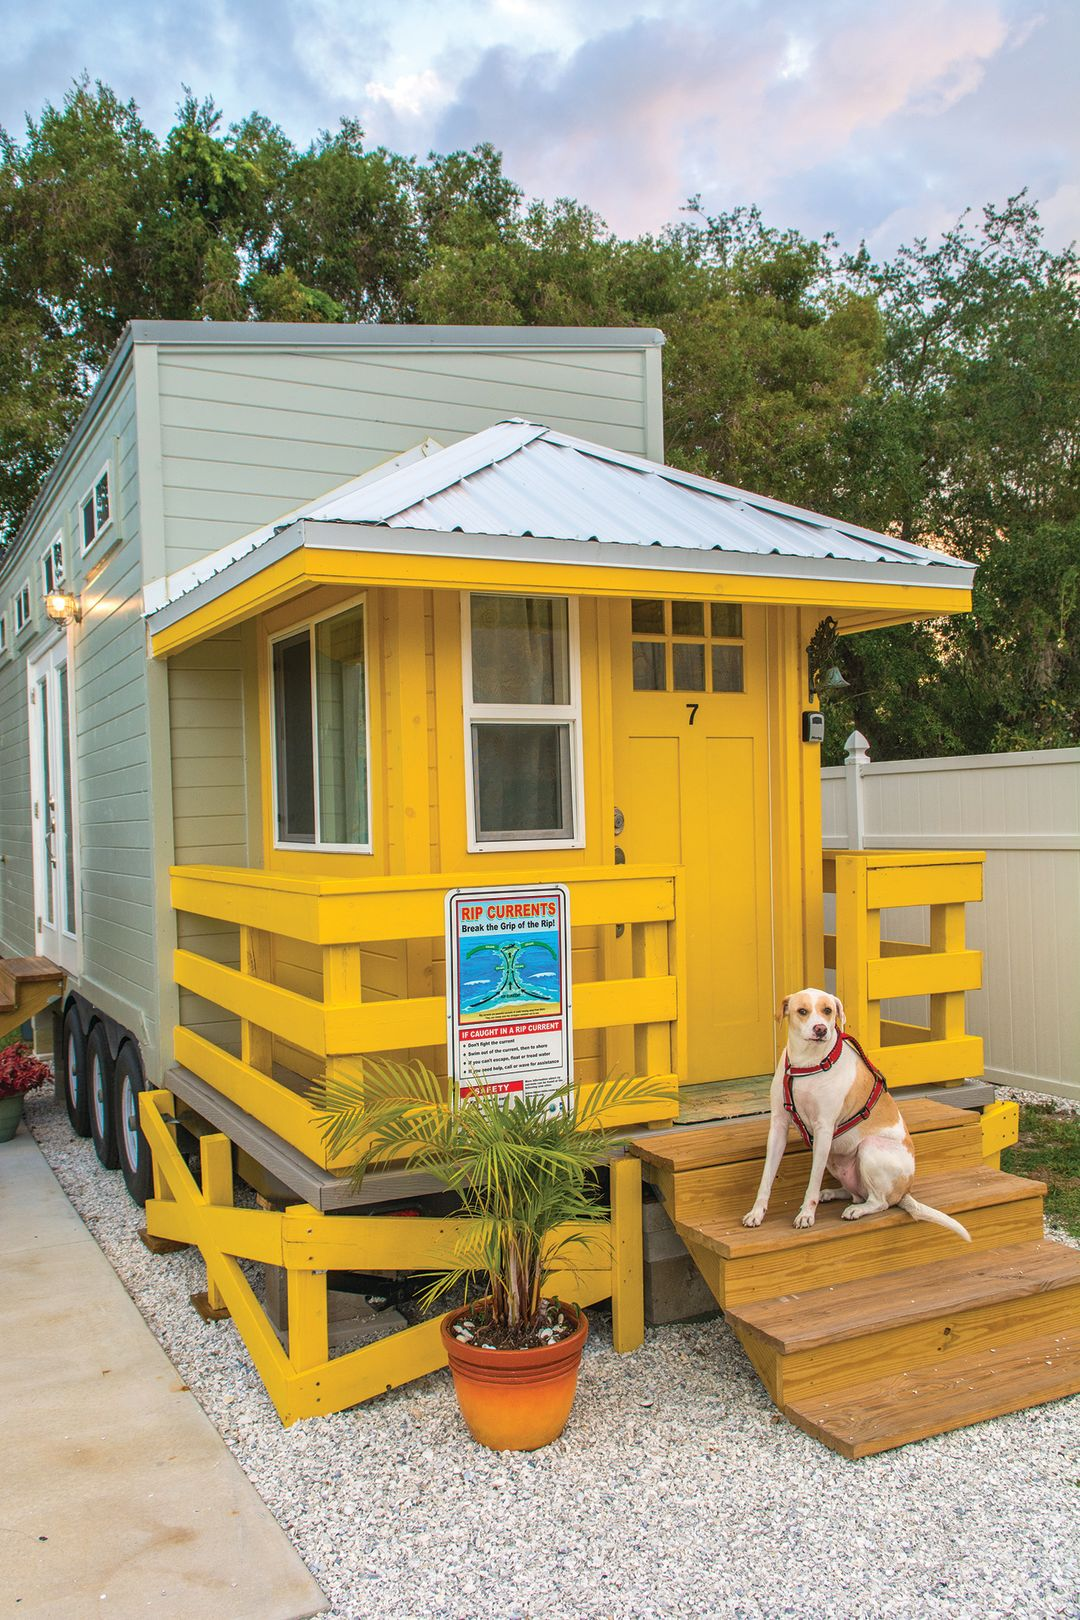 Tinyhouse yellowlifeguardwdog qhuzwz